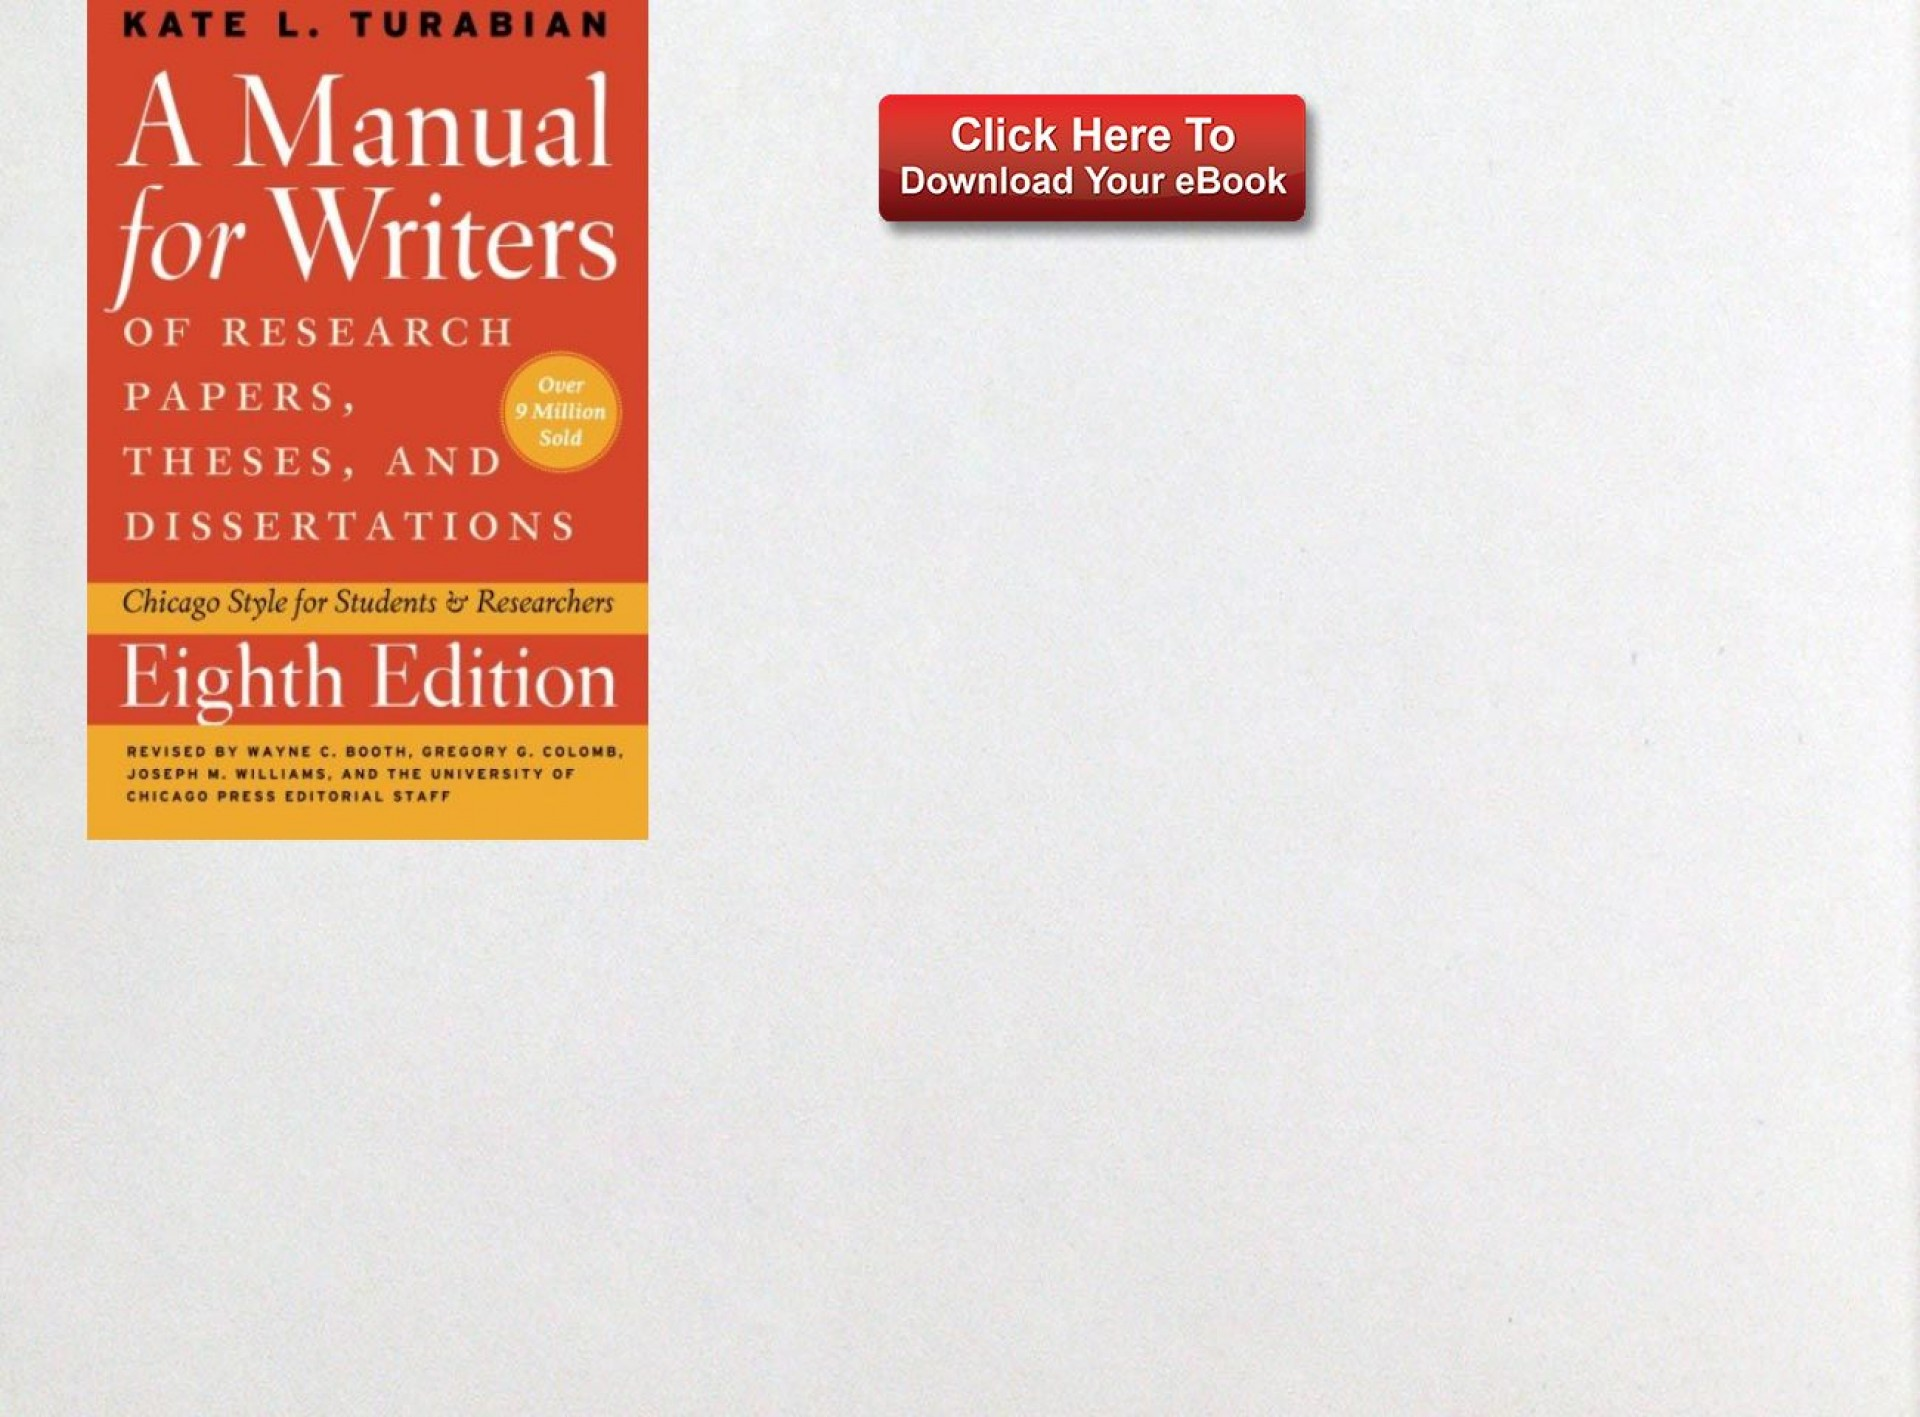 015 Source Research Paper Manual For Writers Of Papers Theses And Dissertations Fearsome A Ed 8 1920